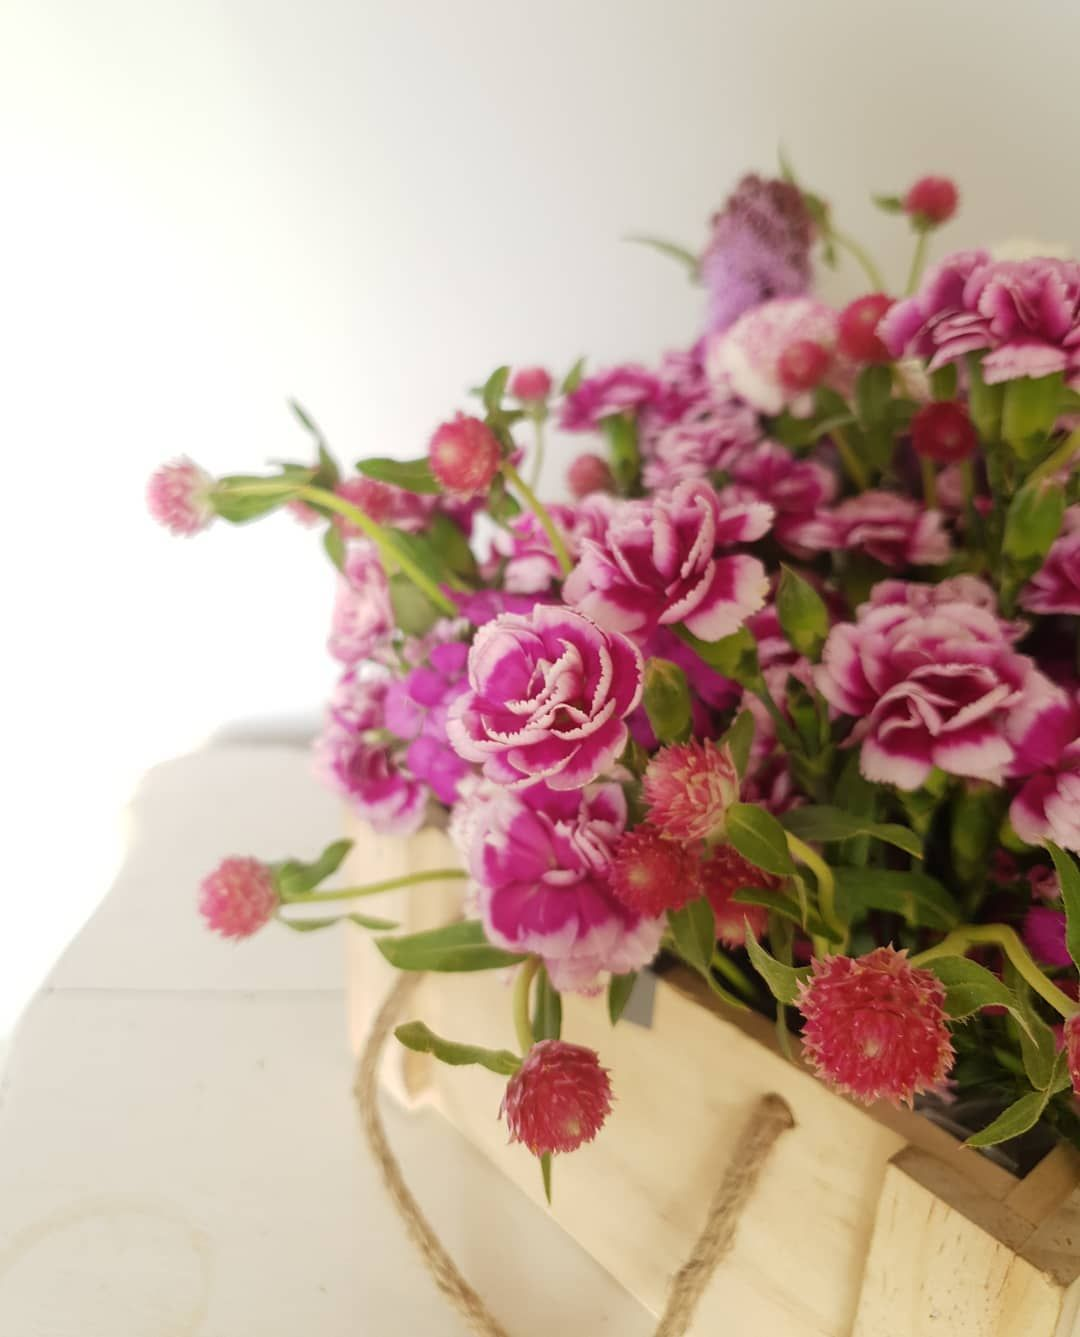 Elements Rare Tinted Carnations And Baby Gomphrena Bloombombs Nofliter Mumbai Pune Florist Floralco In 2020 Flower Company Wedding Flowers Floral Decor